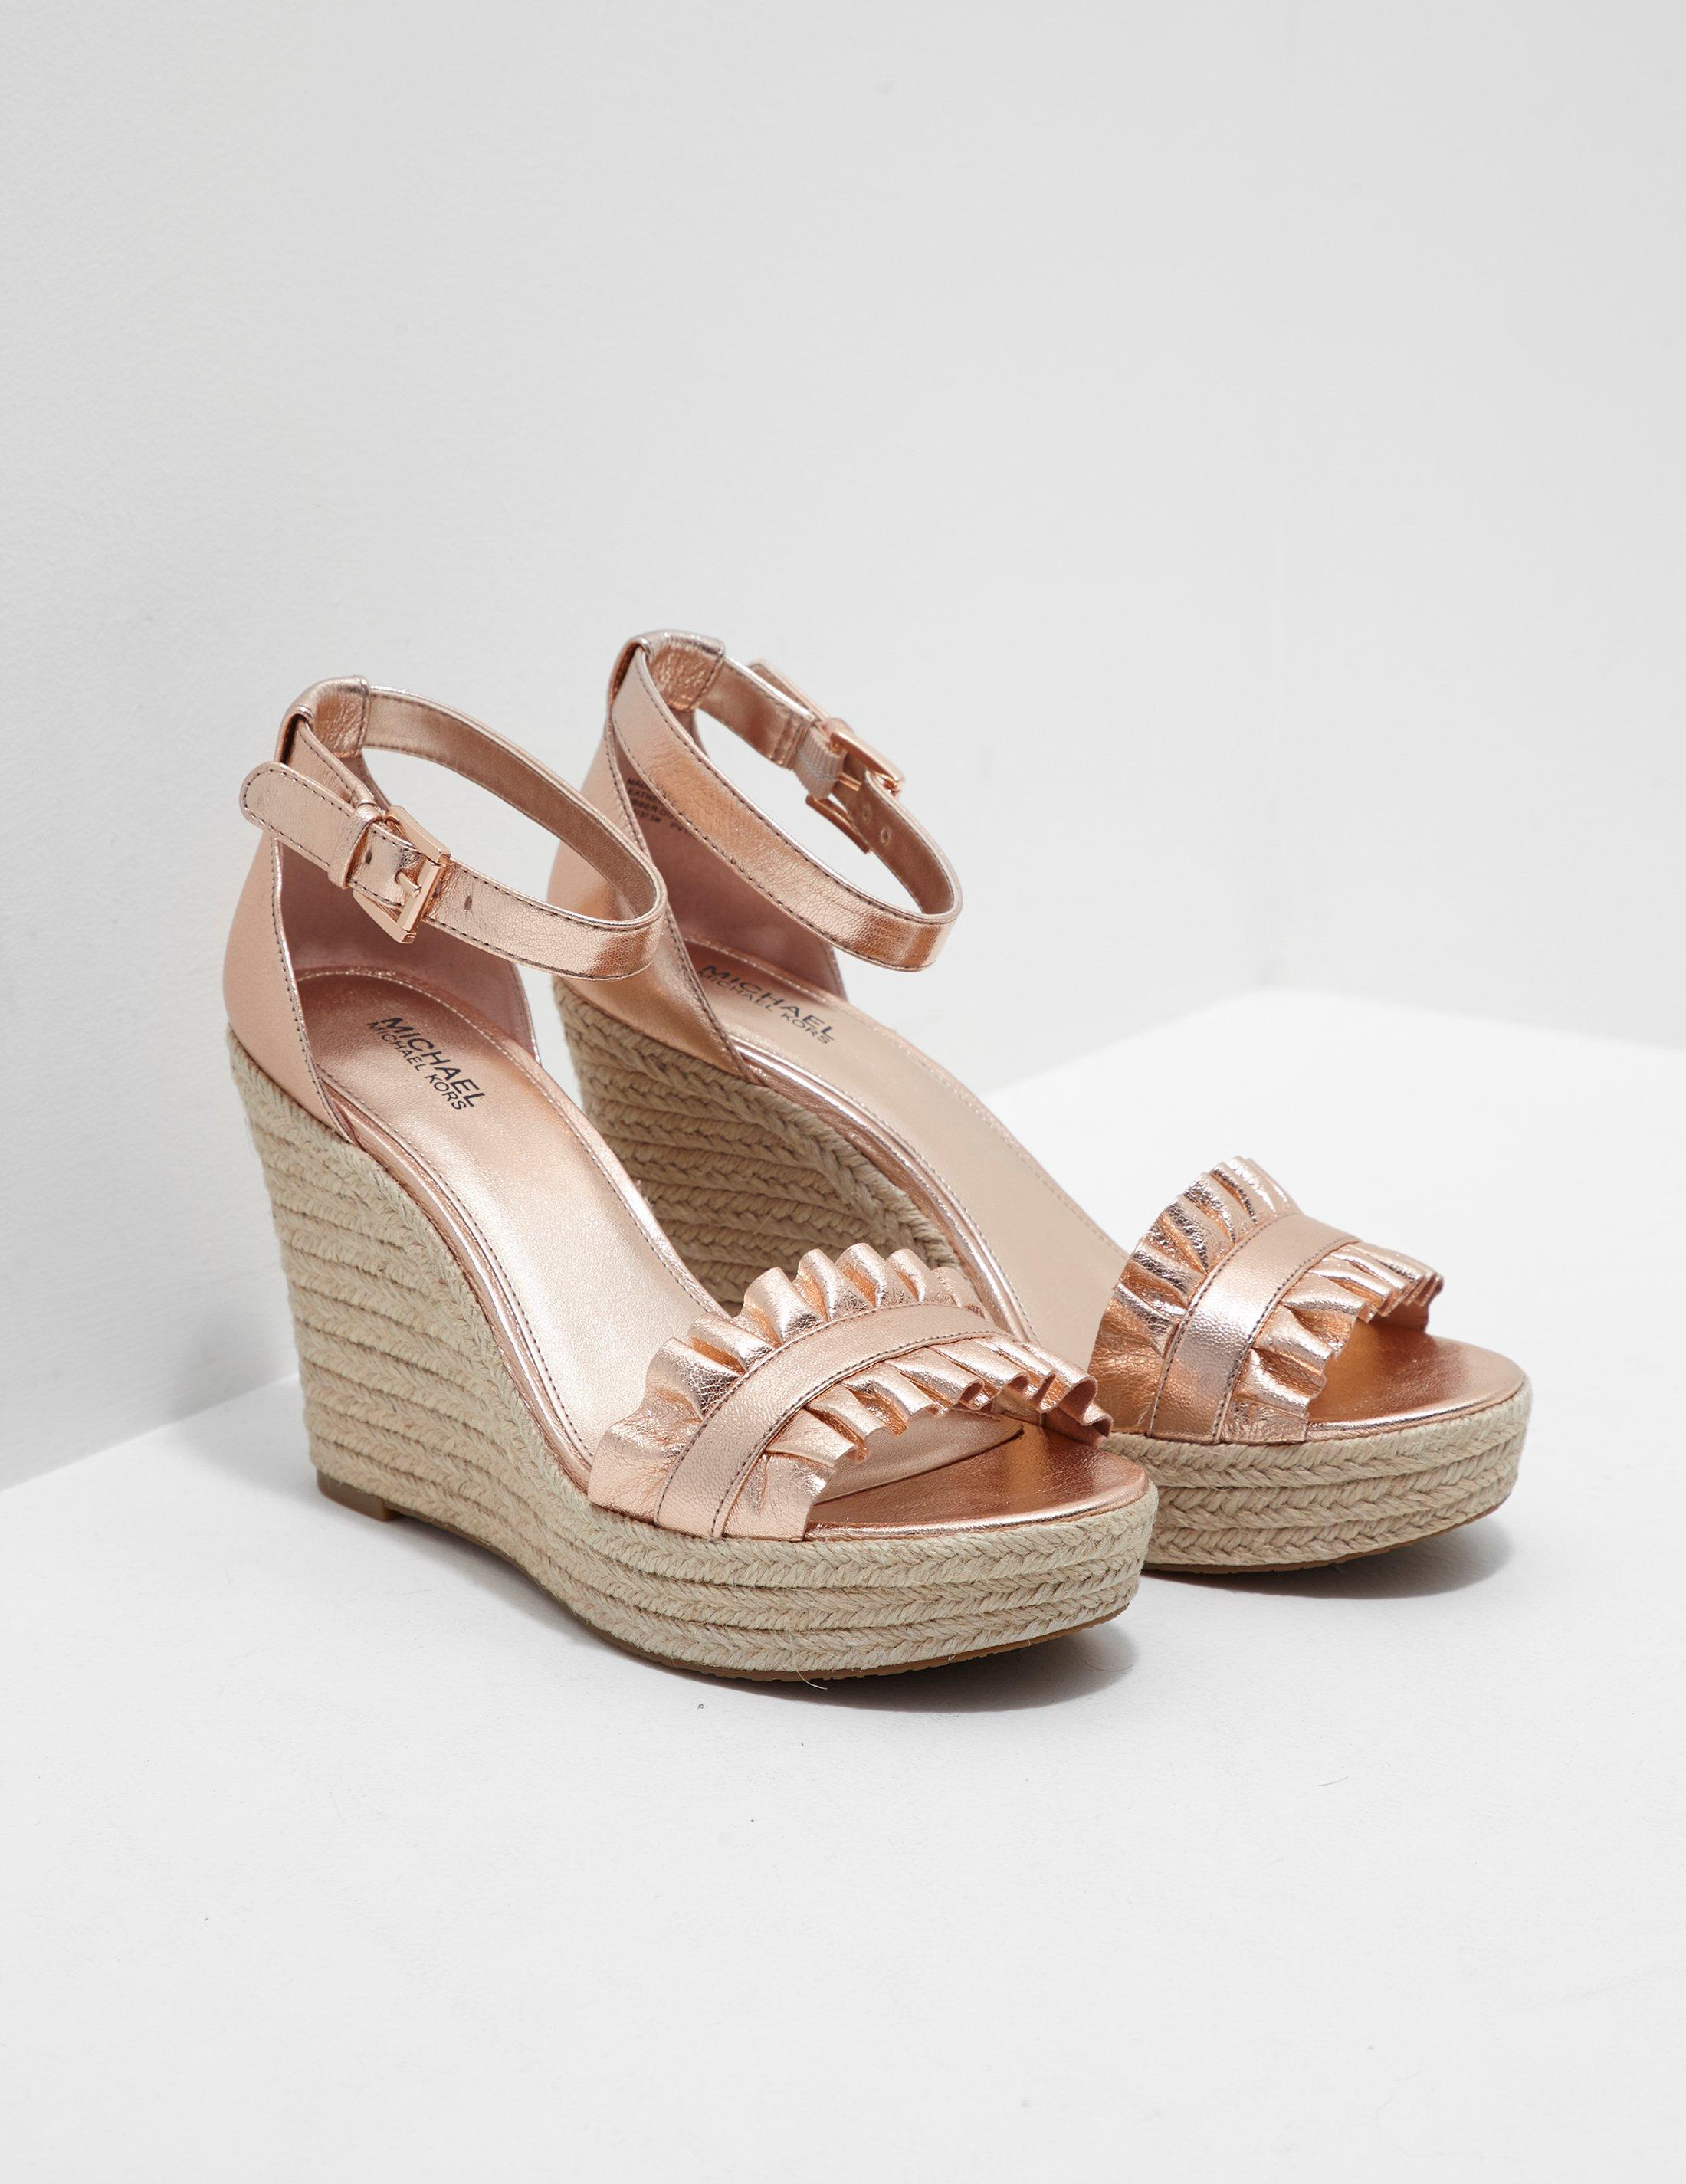 6724e5db2c4d Lyst - Michael Kors Bella Wedges Gold in Metallic - Save 17%